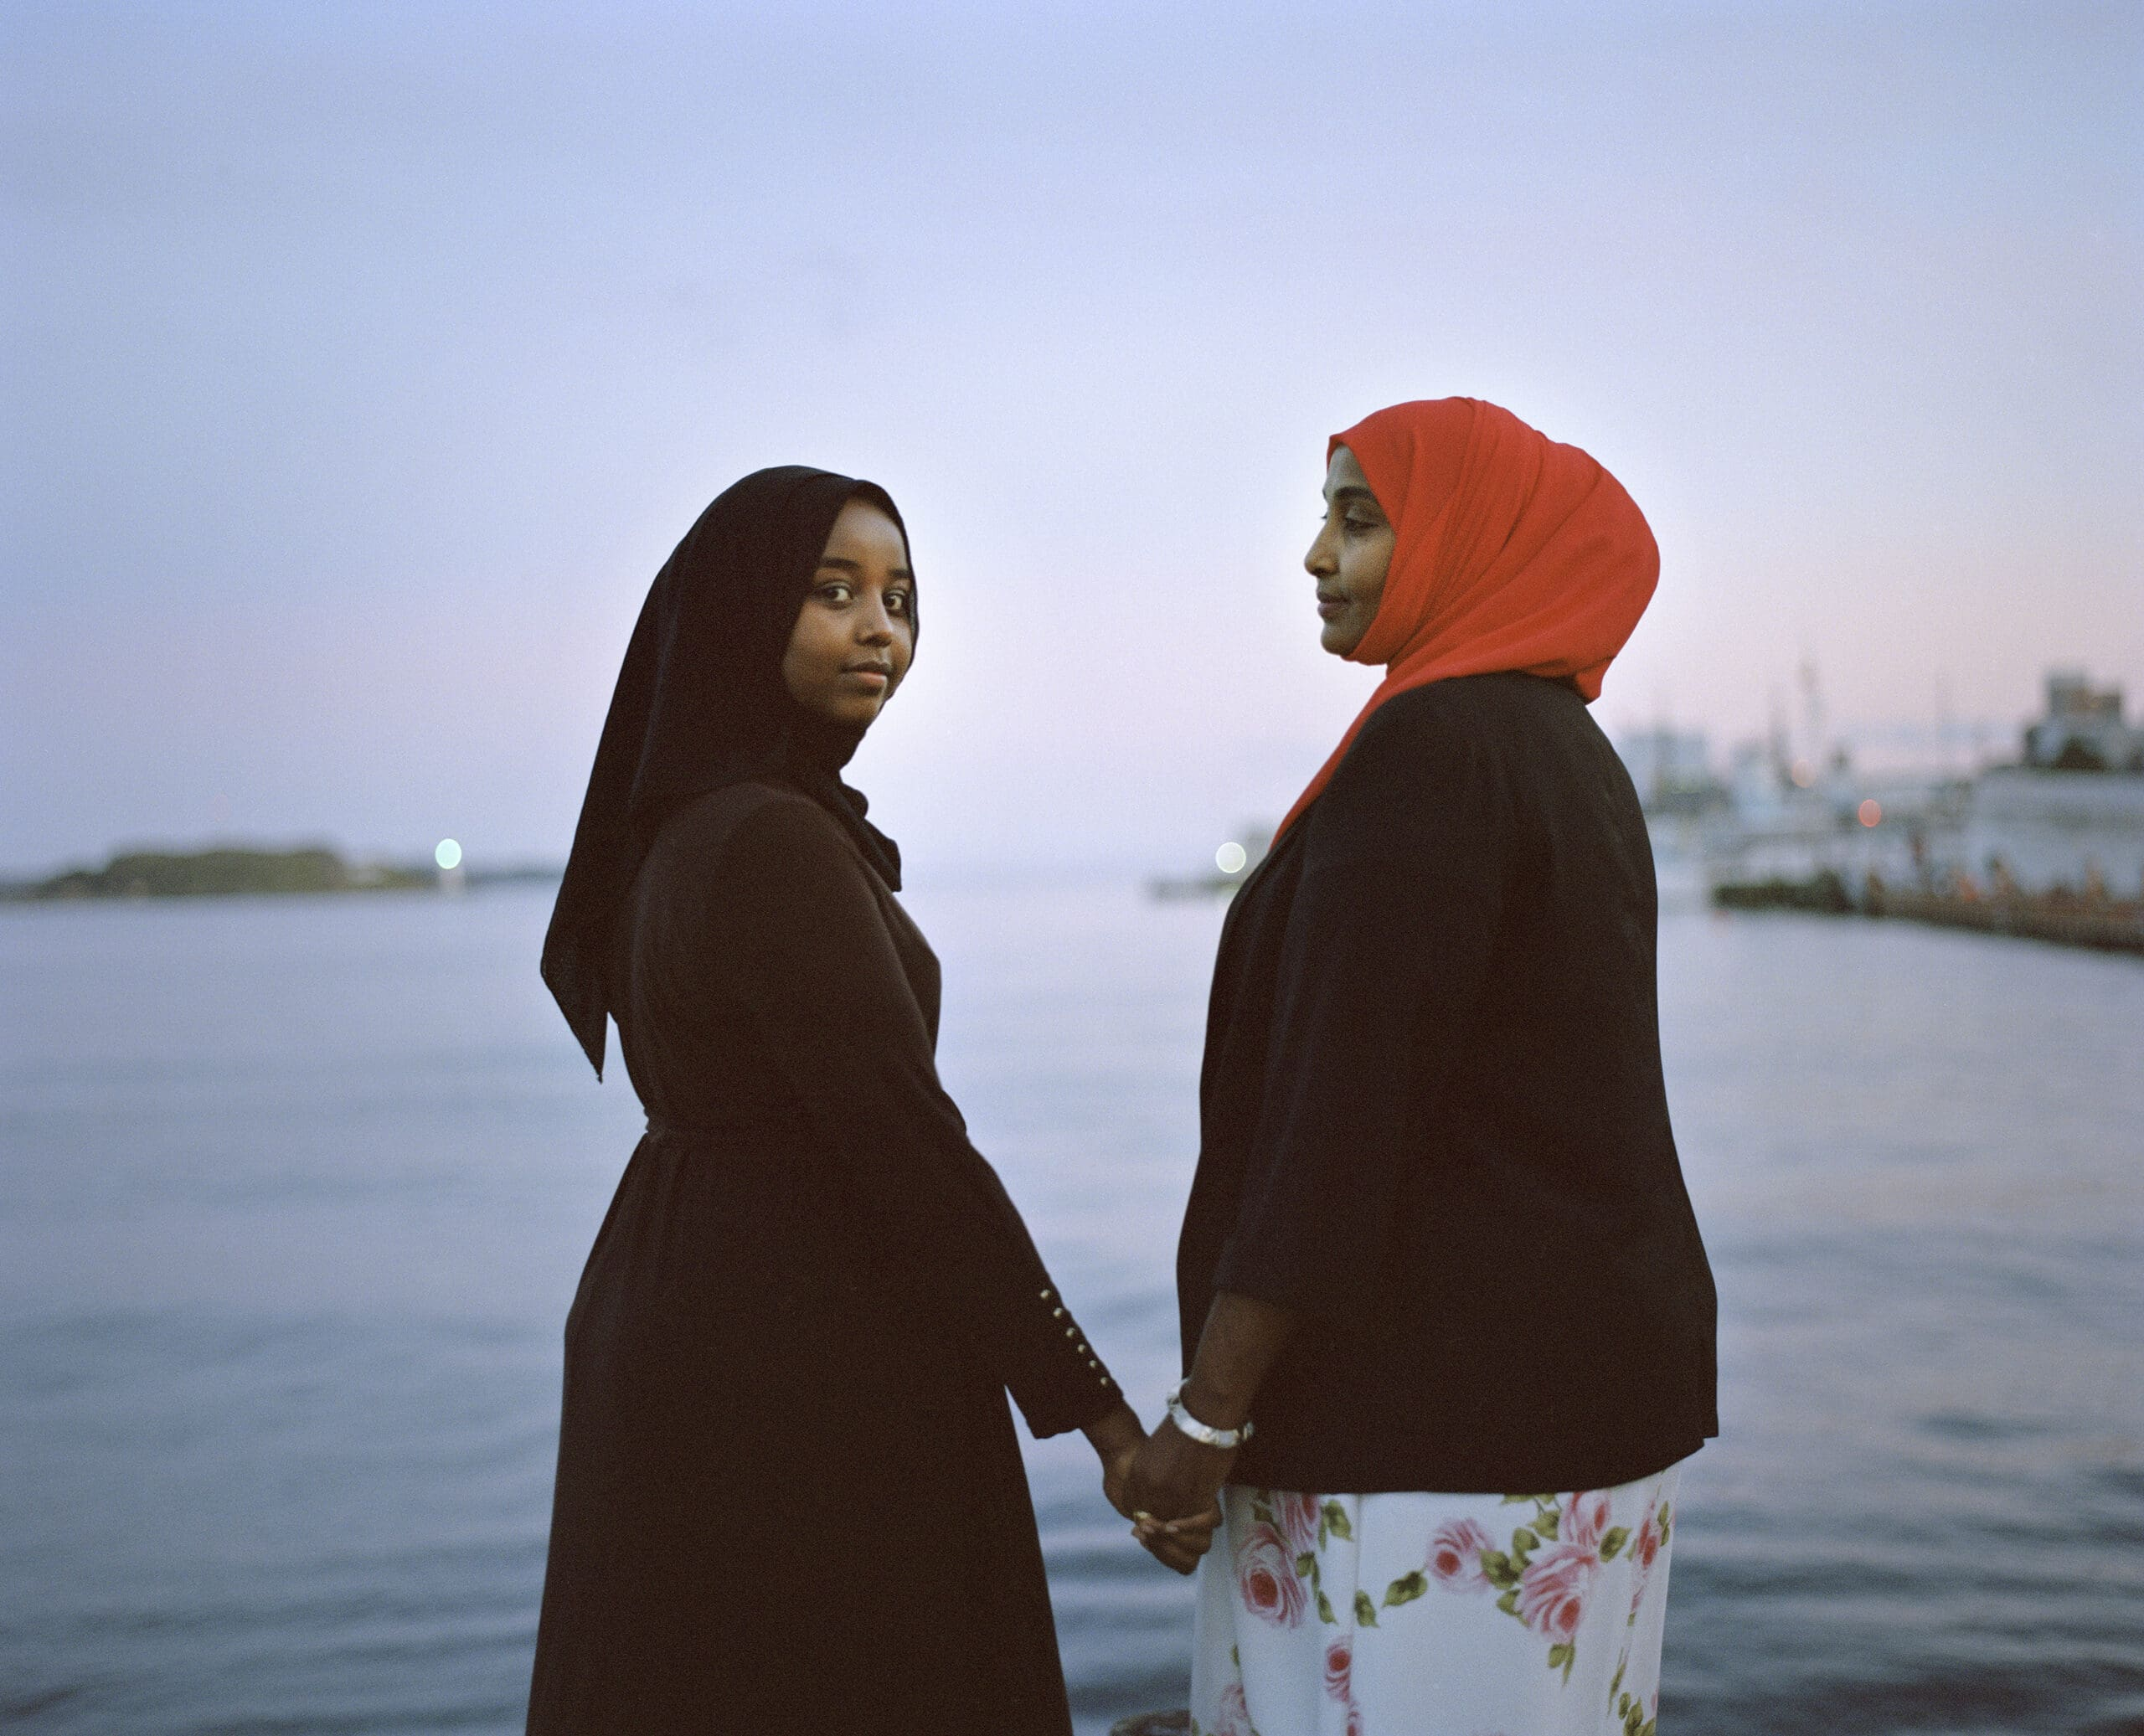 Two Muslim women holding hands posing by water